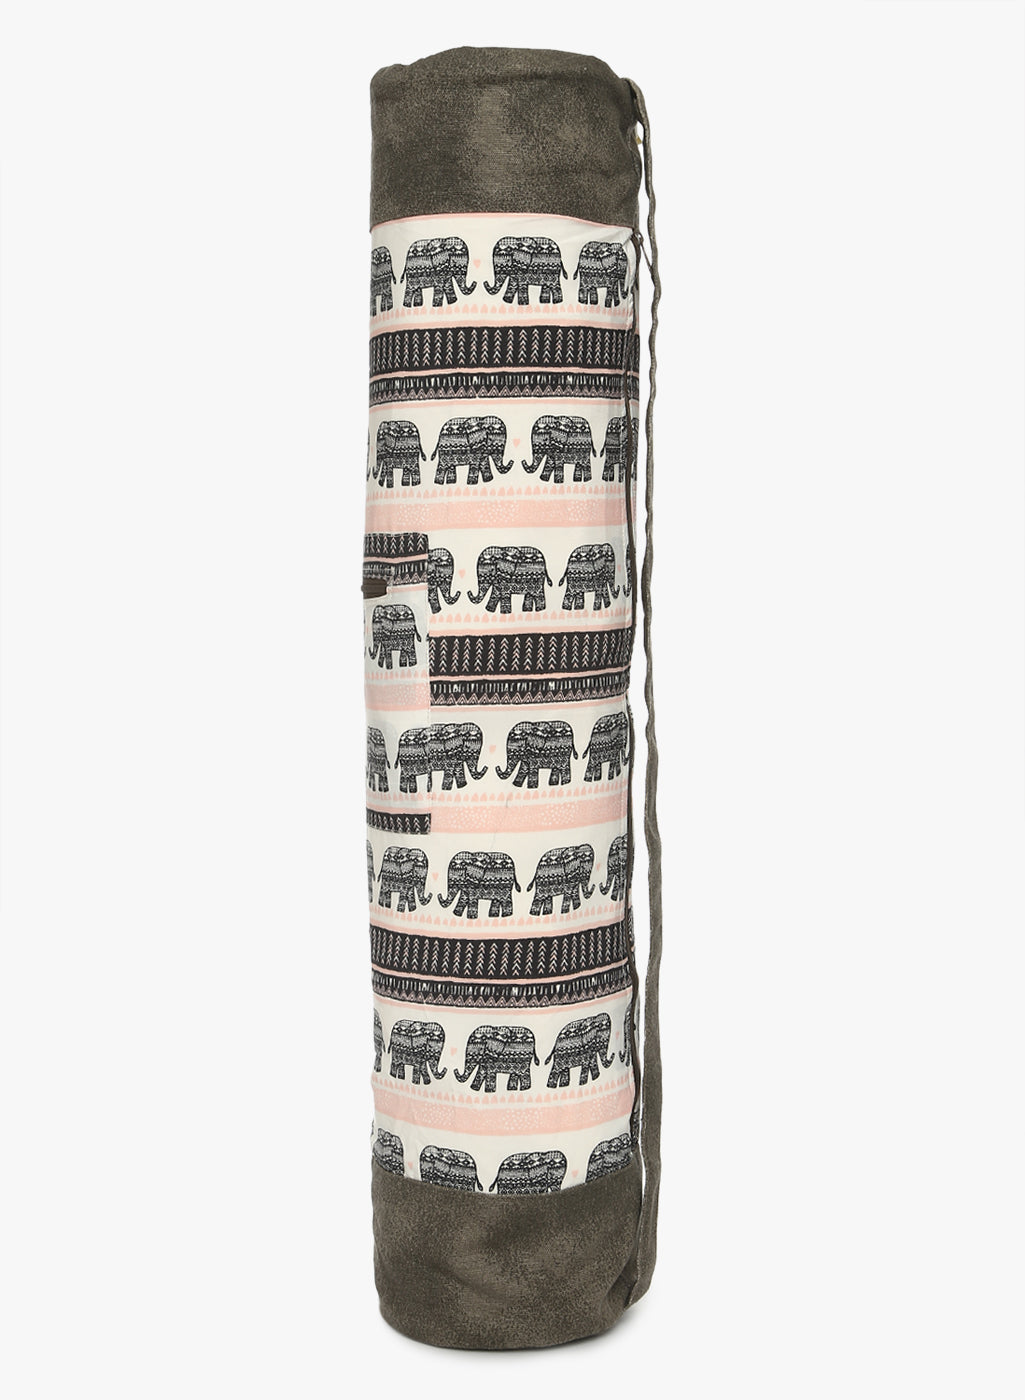 Shakti Warrior Ganesh Yoga Mat Bag